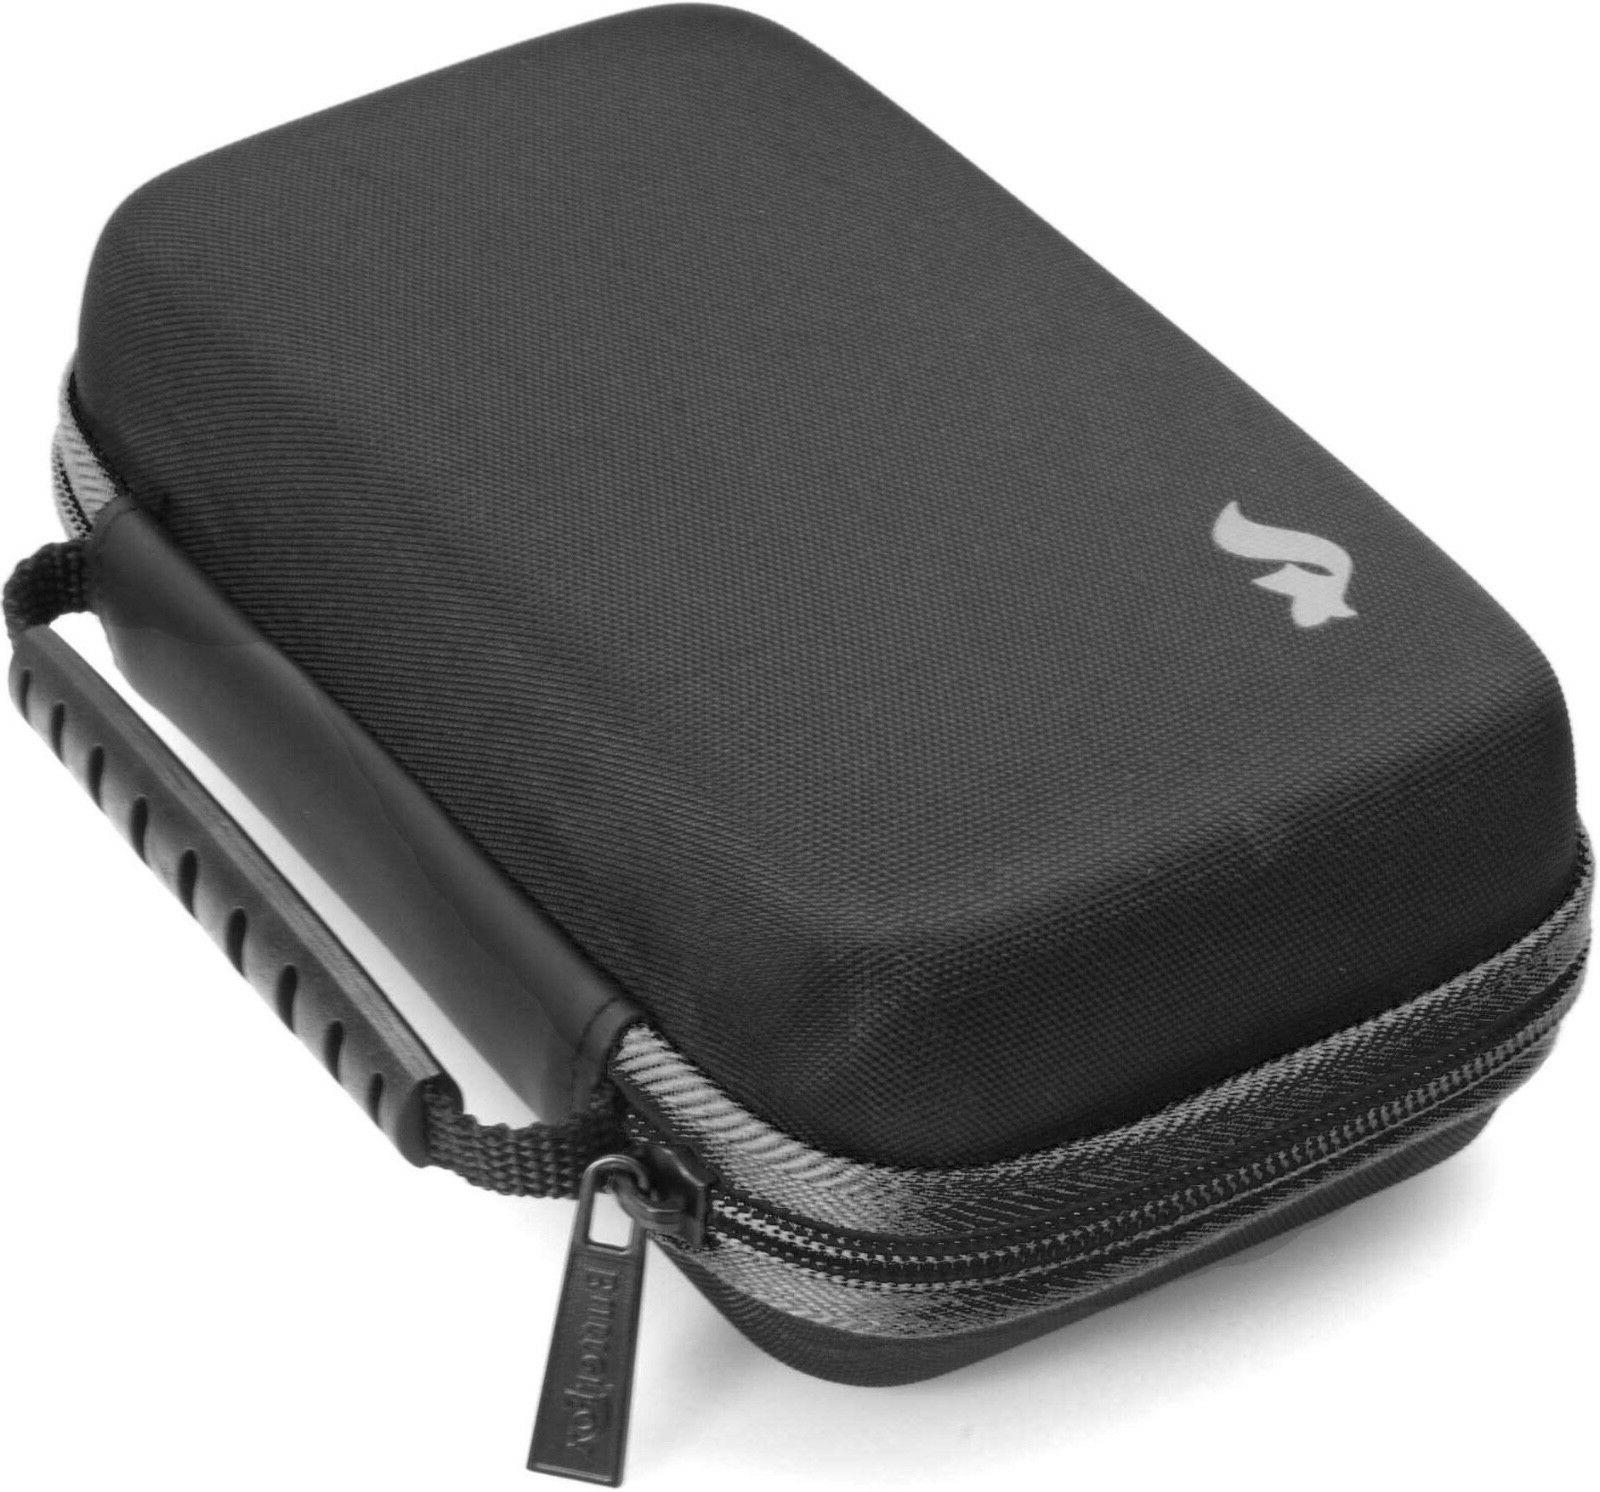 Nintendo XL/3DS Carry Case,Large Wall Charger,24 Card holder